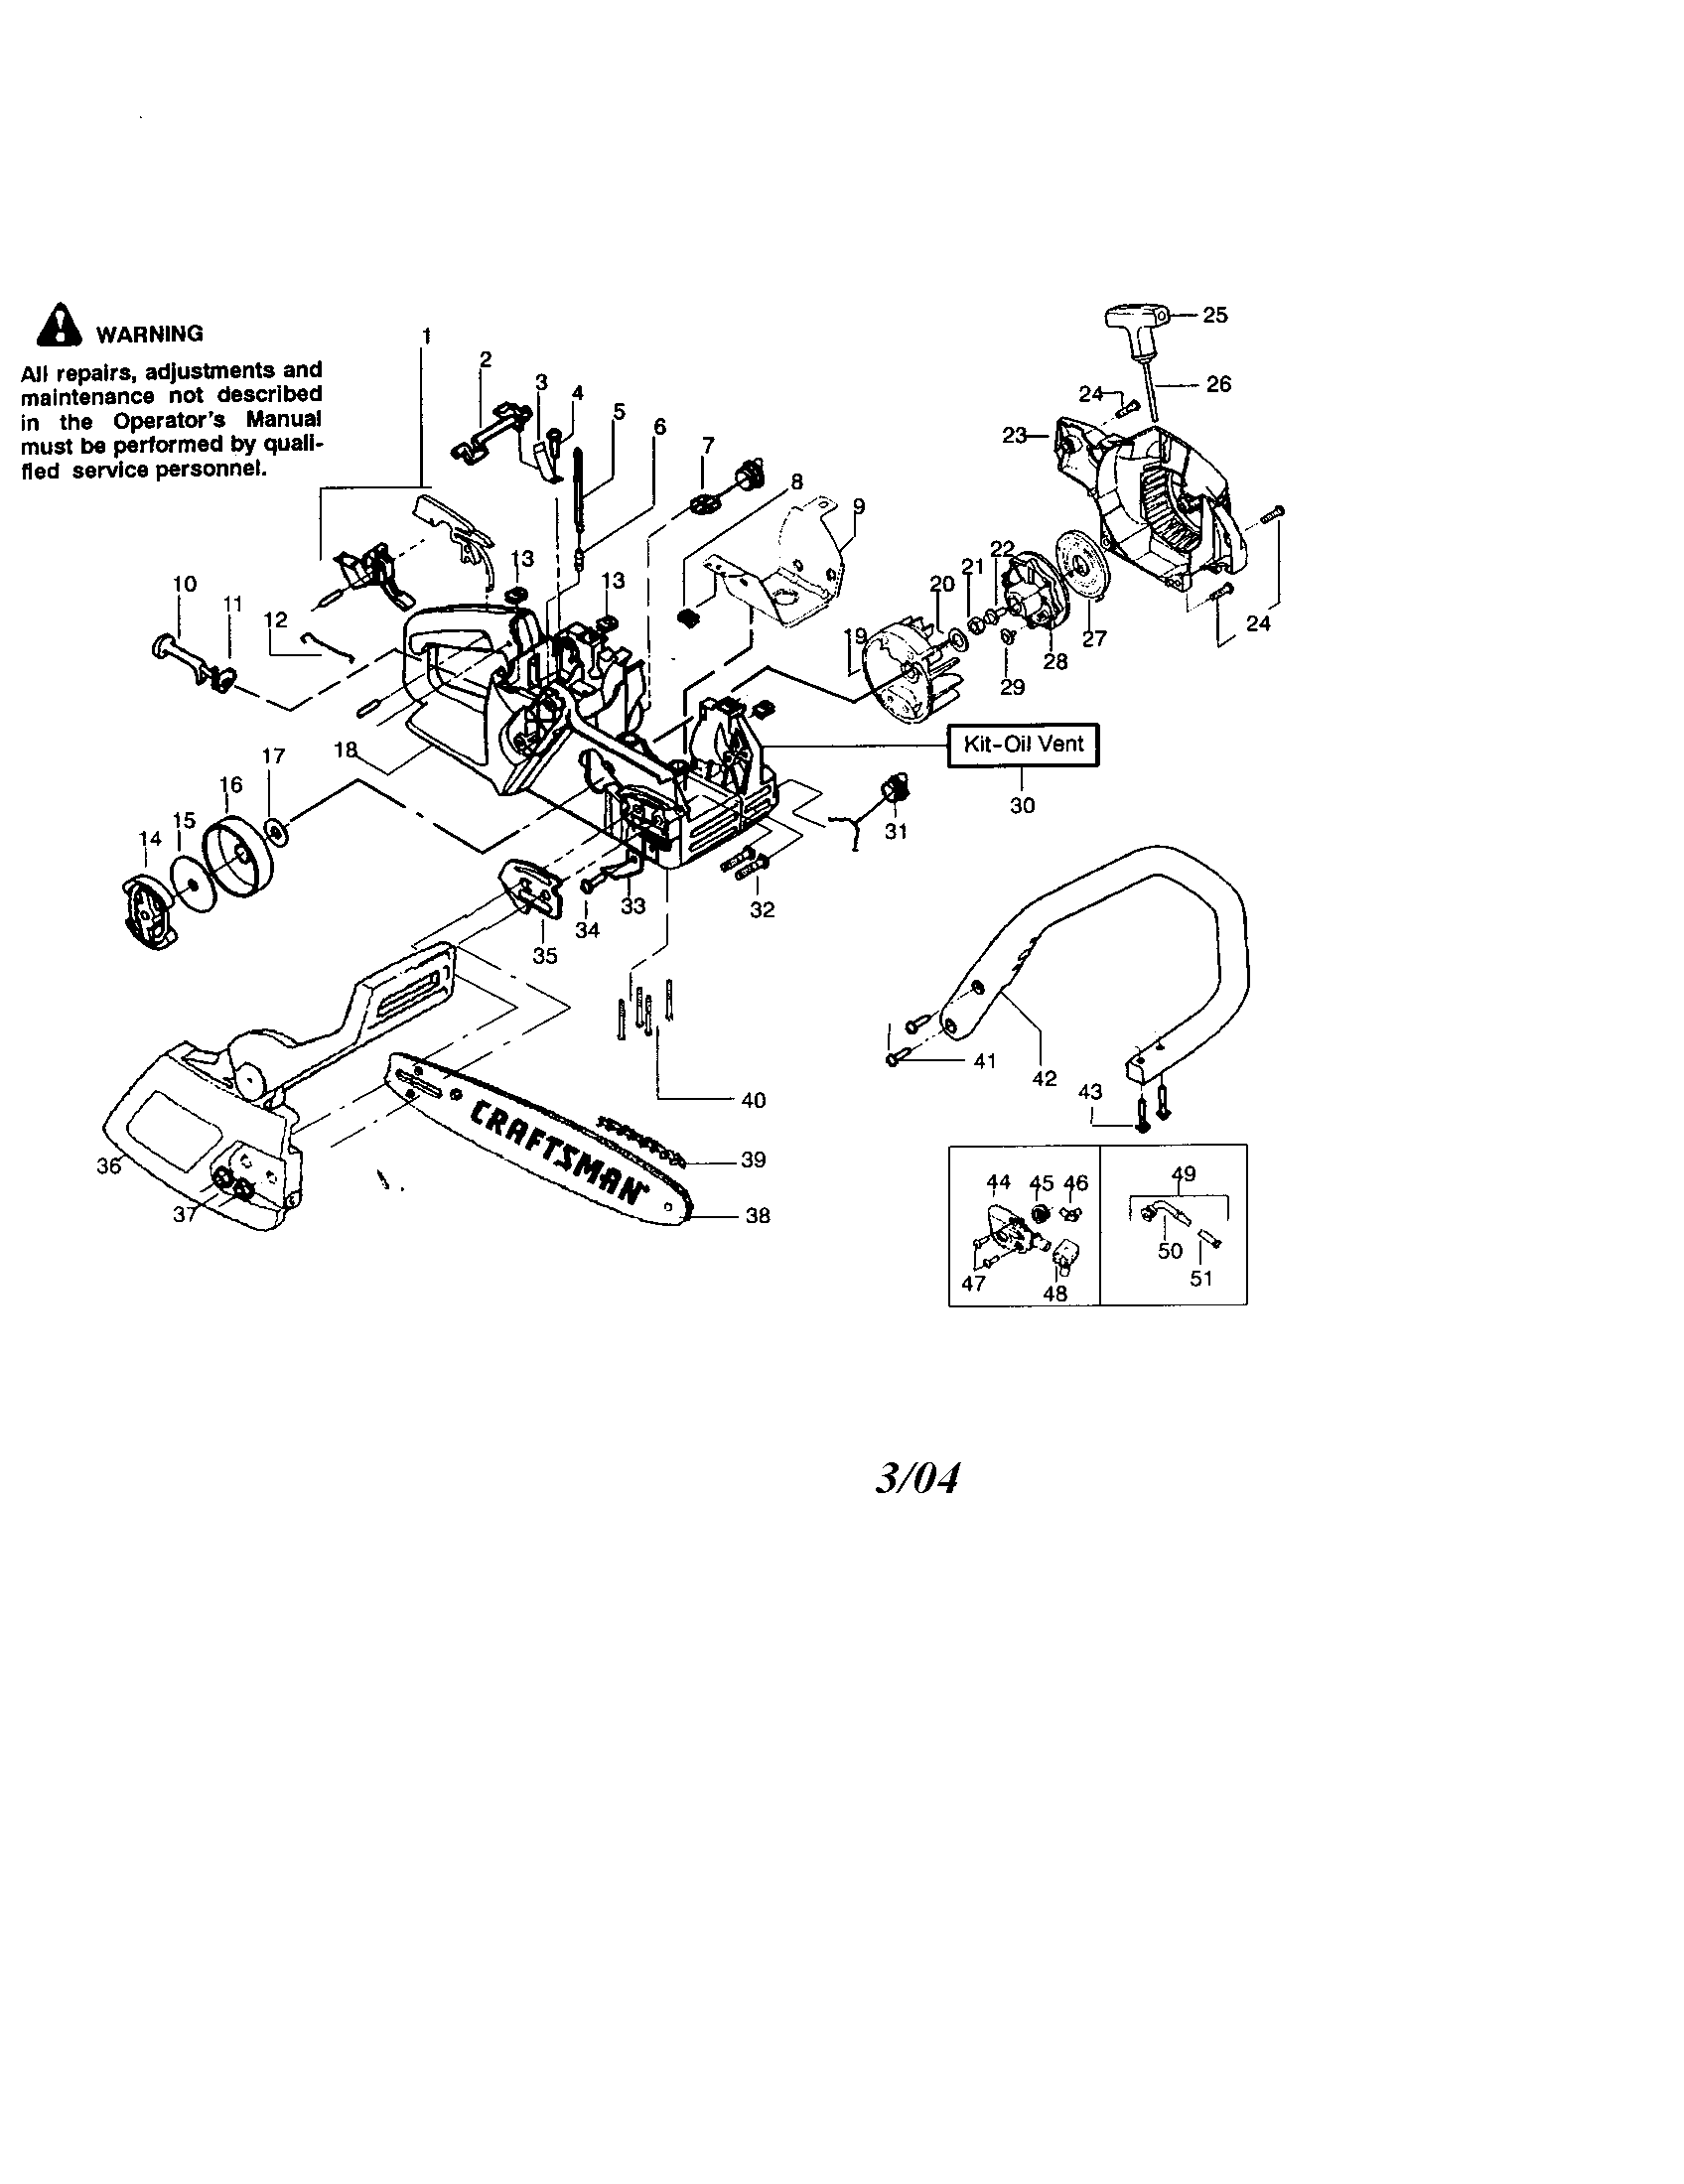 1x 49cc pocket bike wiring diagrams